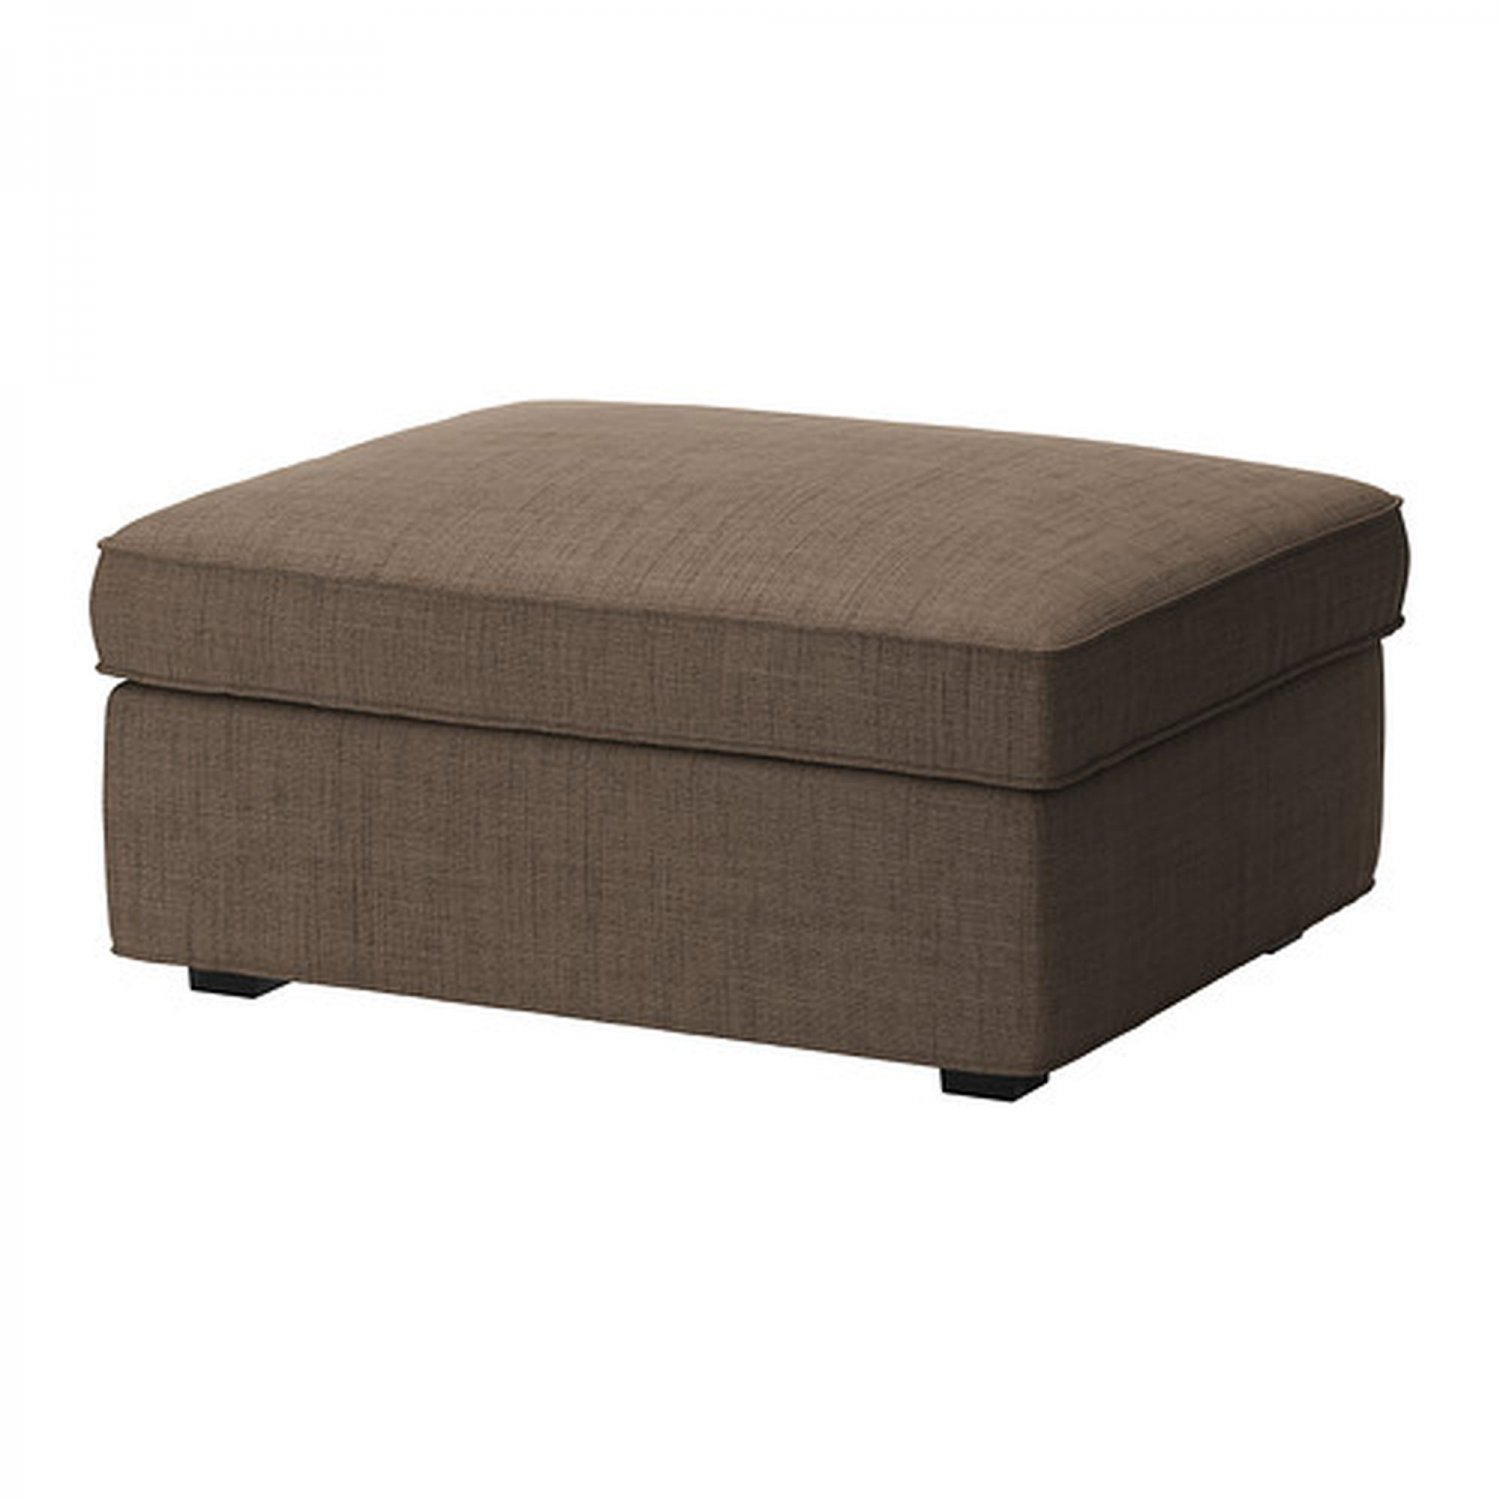 ikea kivik footstool slipcover ottoman cover isunda brown linen blend bezug housse. Black Bedroom Furniture Sets. Home Design Ideas